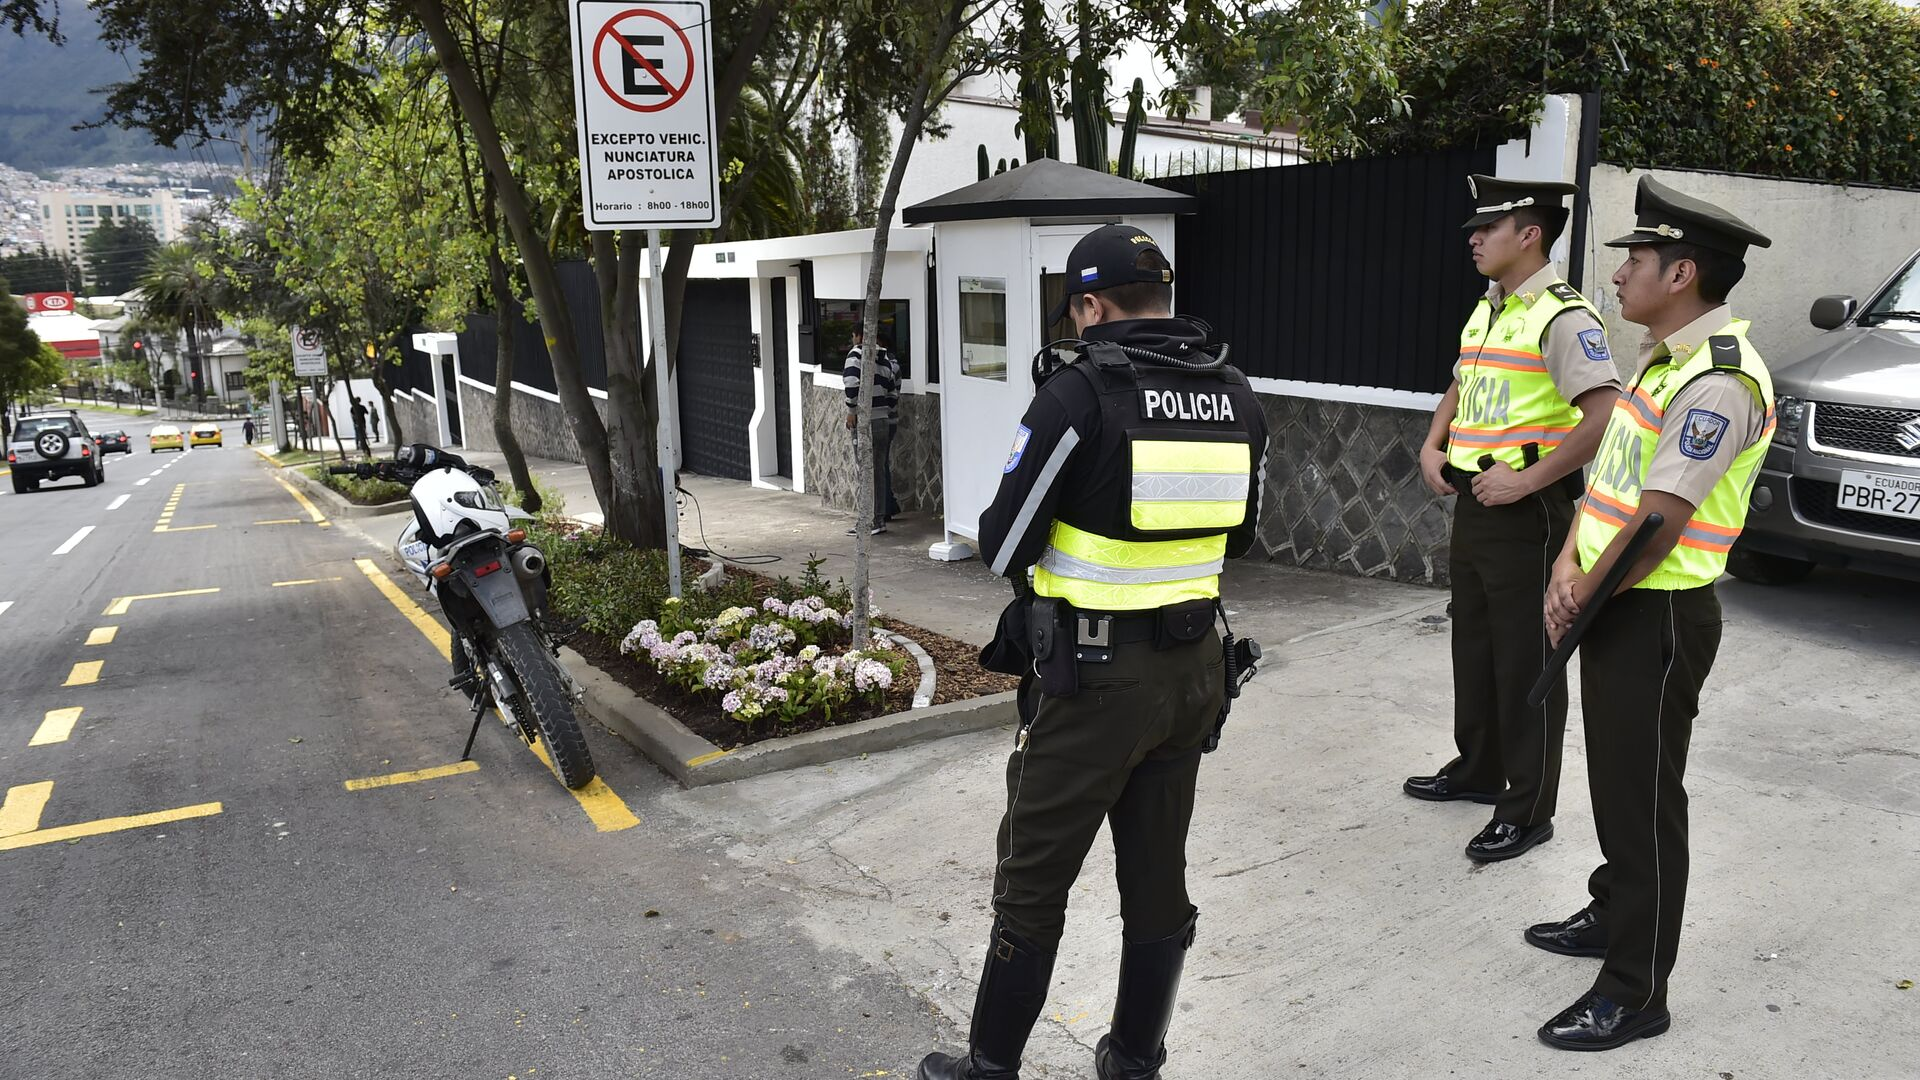 Police stand guard in front of the Apostolic Nunciature in Quito on July 4, 2015 - Sputnik Mundo, 1920, 22.09.2021